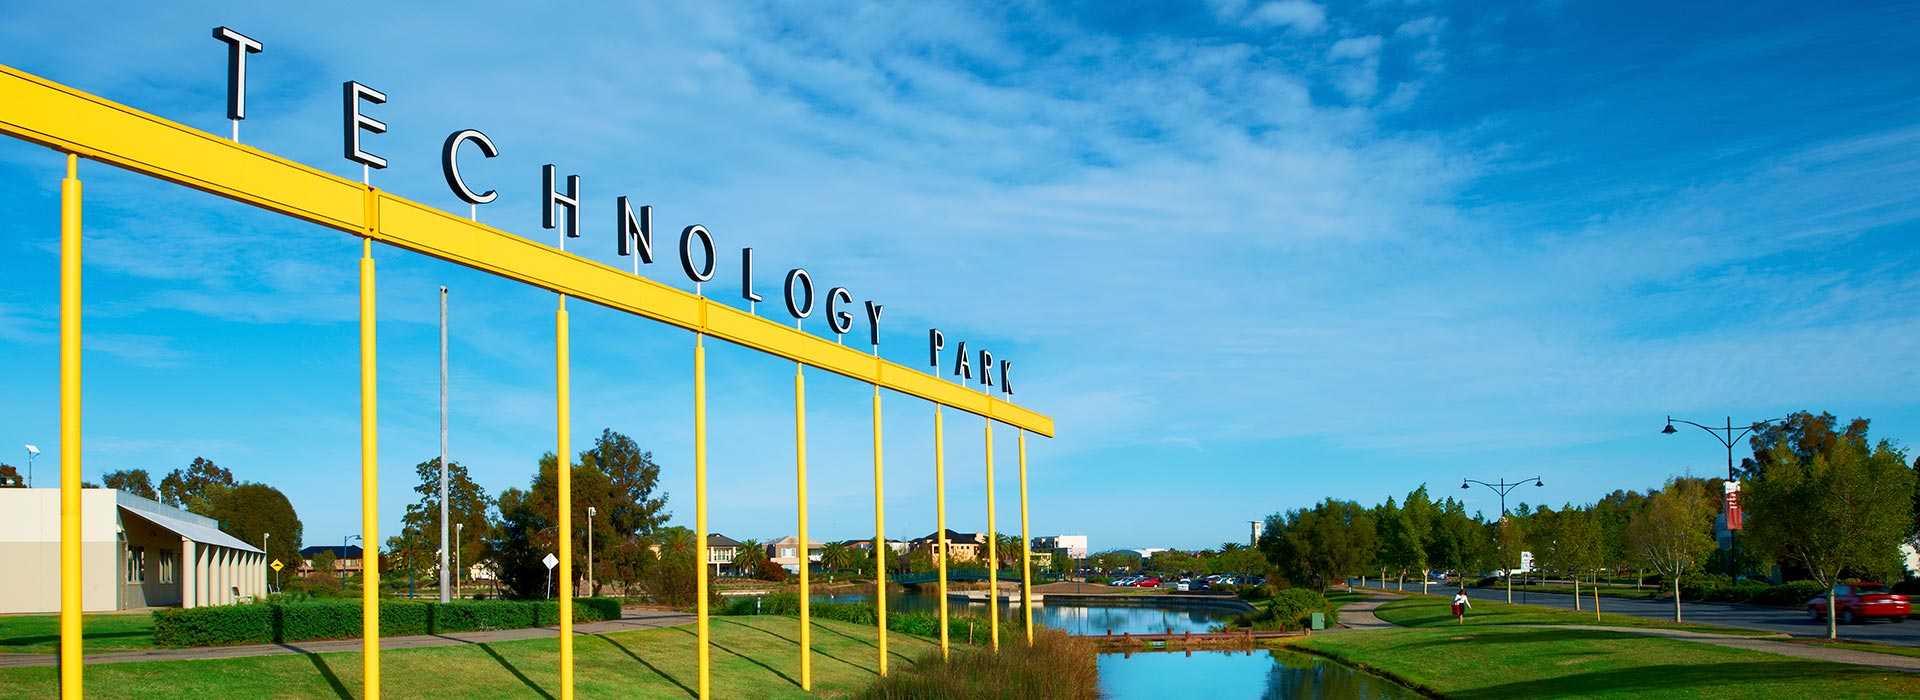 The Technology Park sign at Mawson Lakes